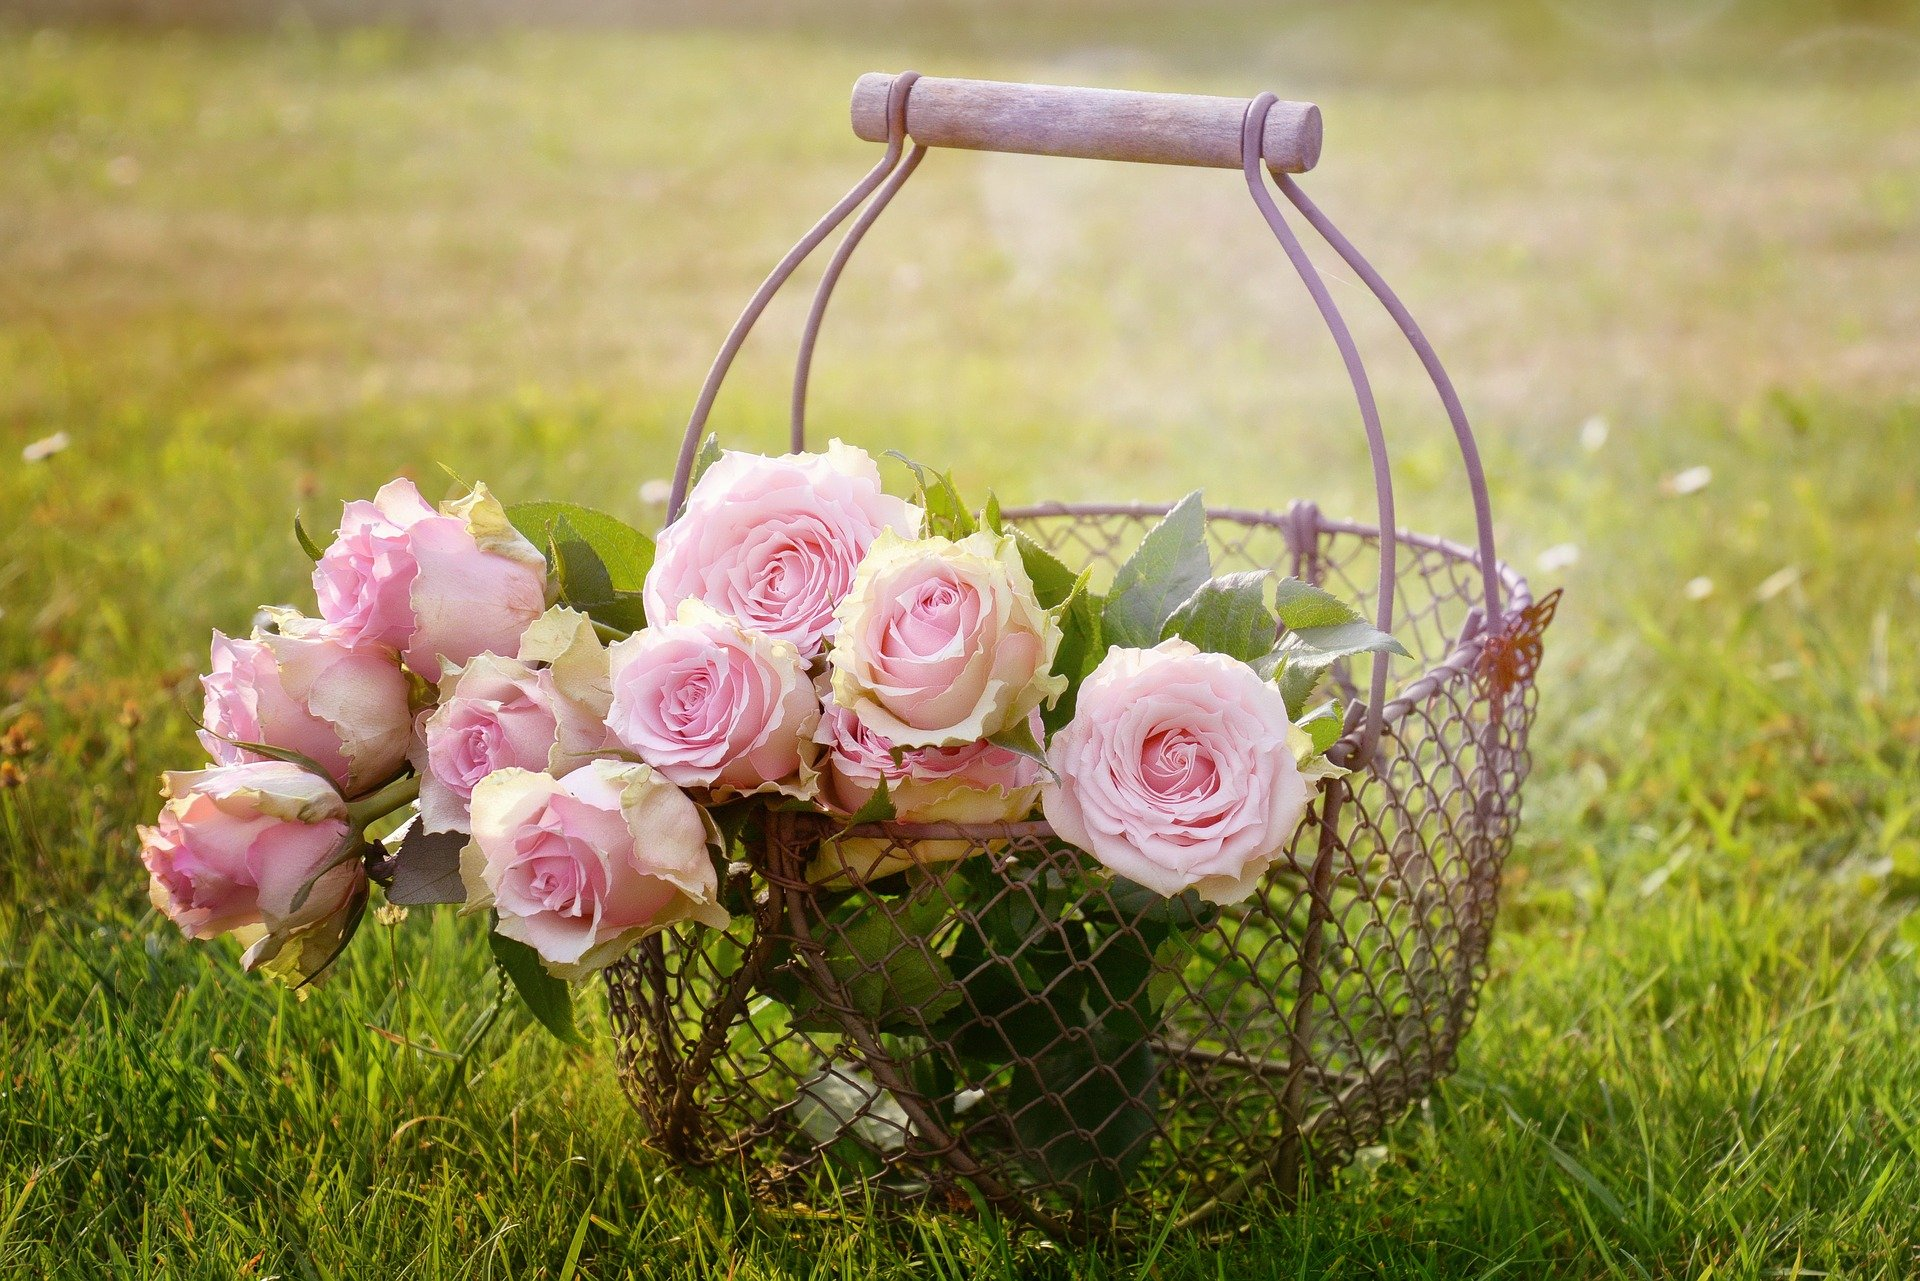 , The most beautiful rose garden – All infos about roses, Best Garden, Home And DIY Tips